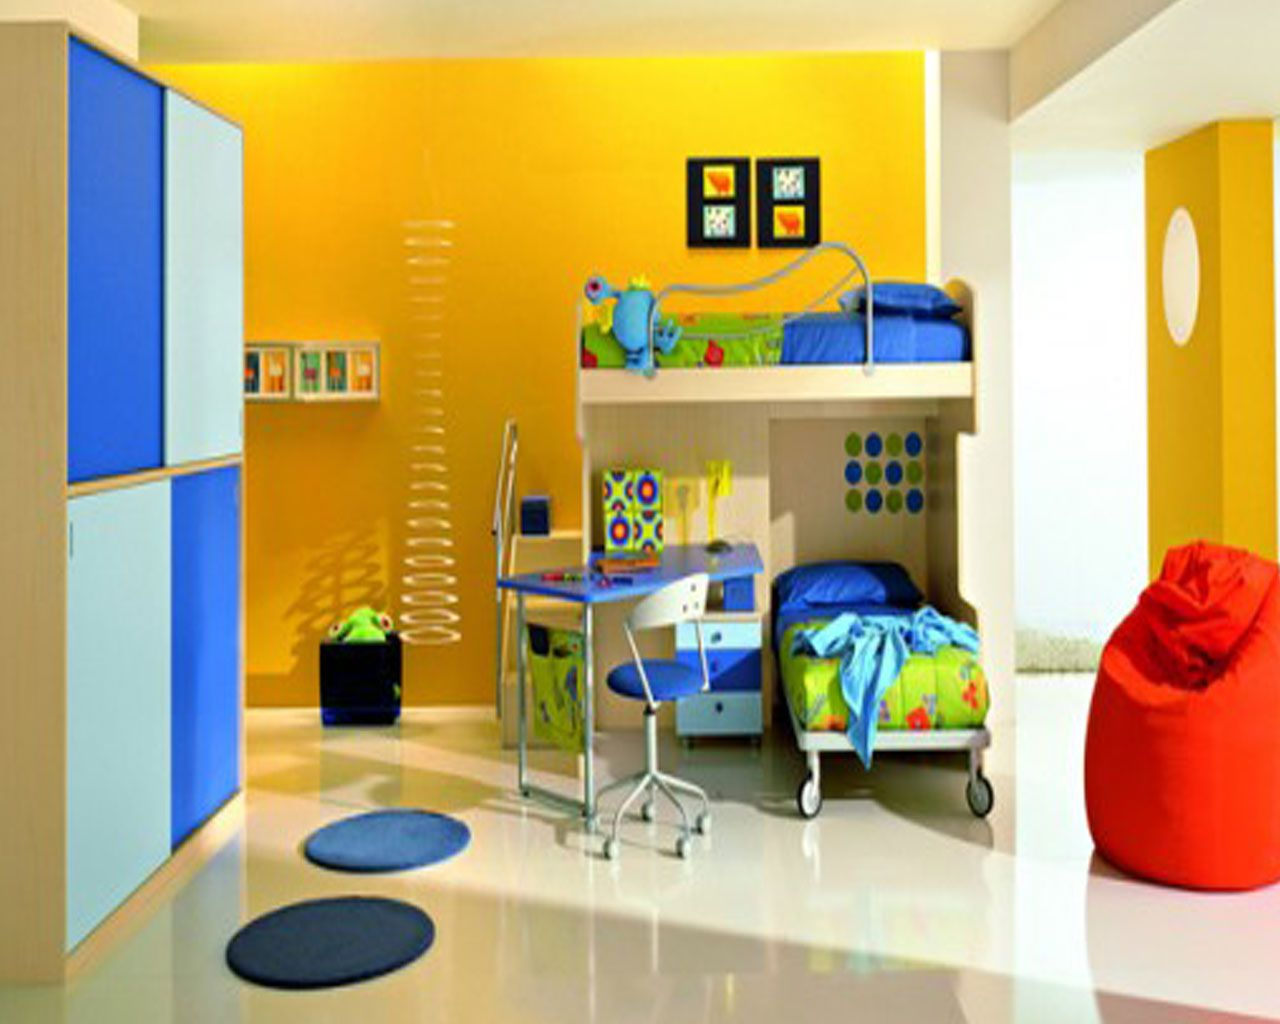 Bedroom colors blue and red - This Room Is An Example Of A Triadic Color Scheme Because It Uses Colors Equal Distance From Each Other On The Color Wheel Blue Yellow And Red